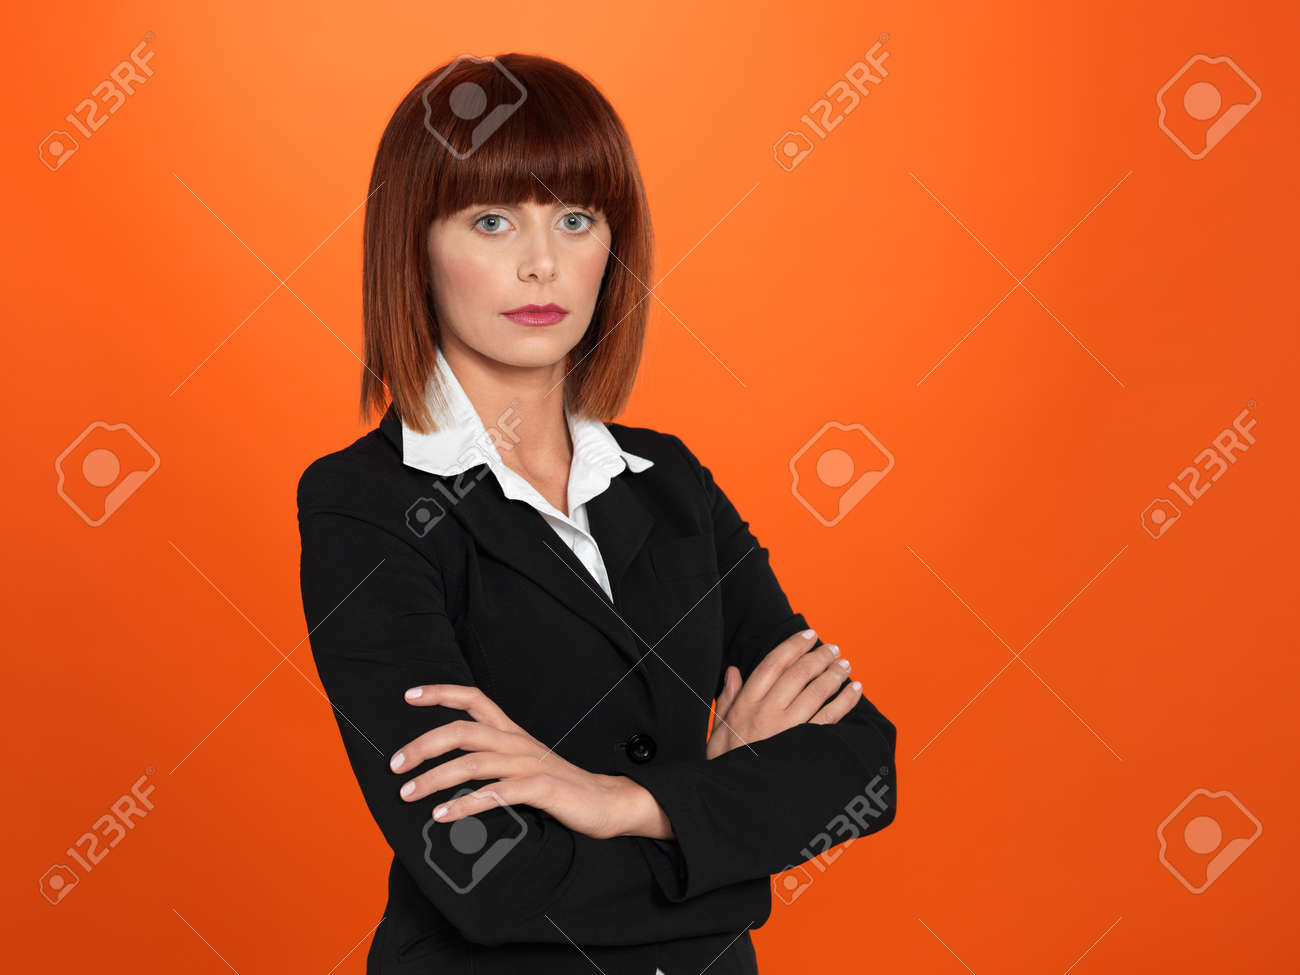 portrait of a beautiful, young, businesswoman, with her arms crossed, on orange background Stock Photo - 13239439